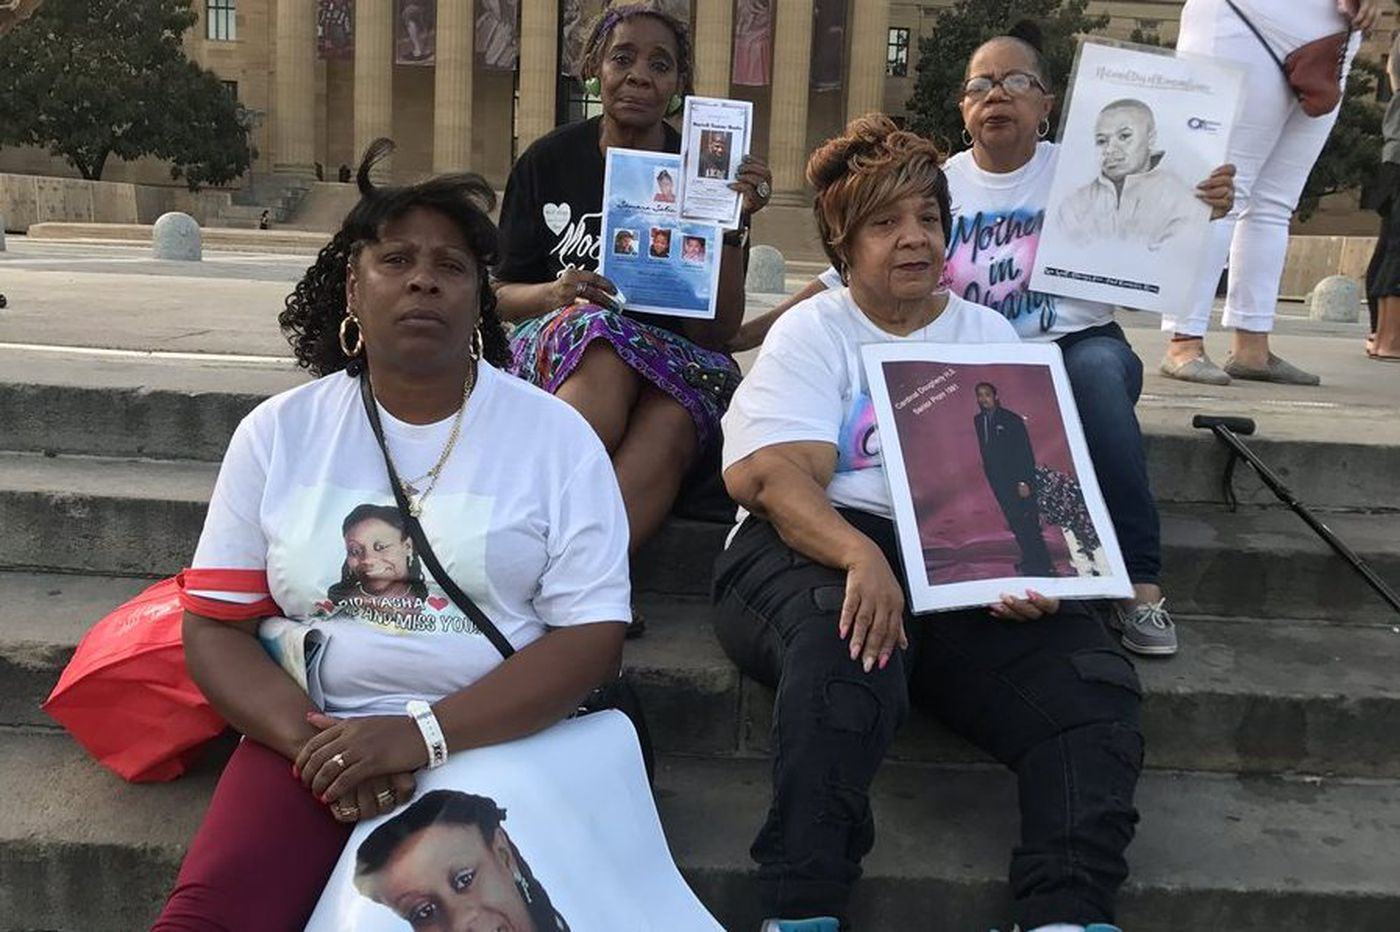 What will it take for Philly to remember its murder victims? | Helen Ubiñas